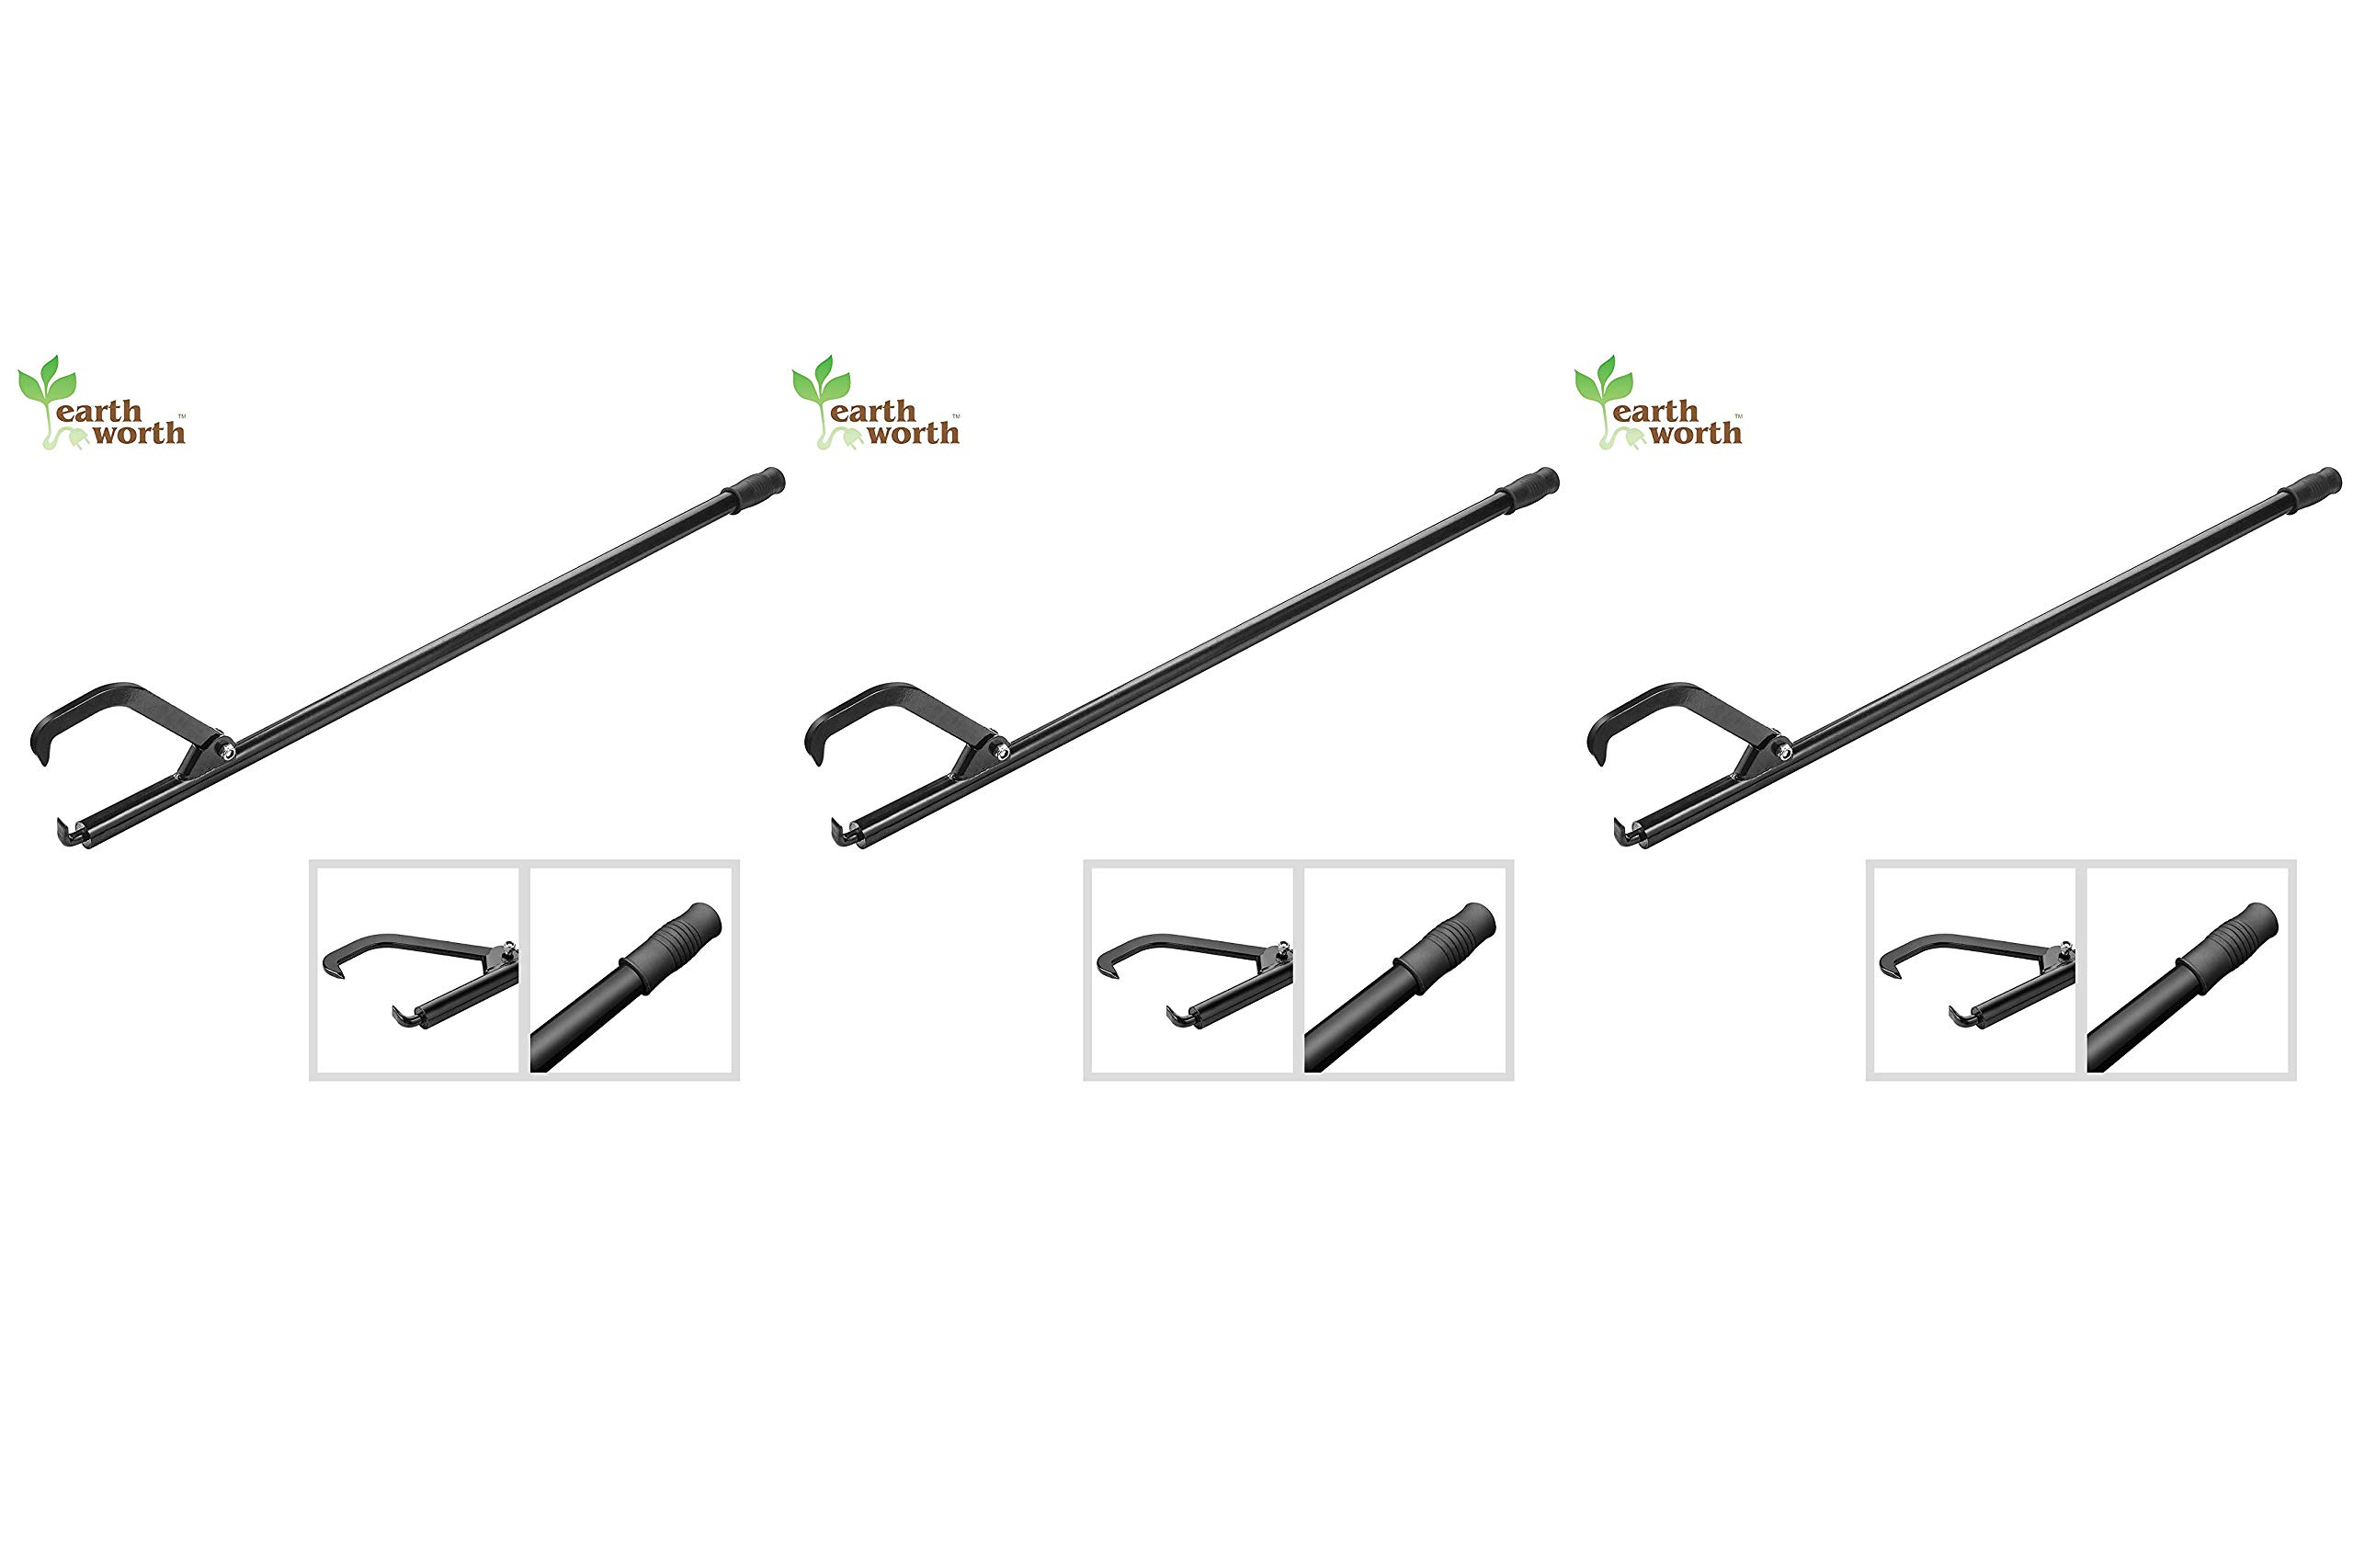 Earth Worth 1945 Cant Hook   Retractable 14 Inch Opening   Steel Handle (Thrее Рack)